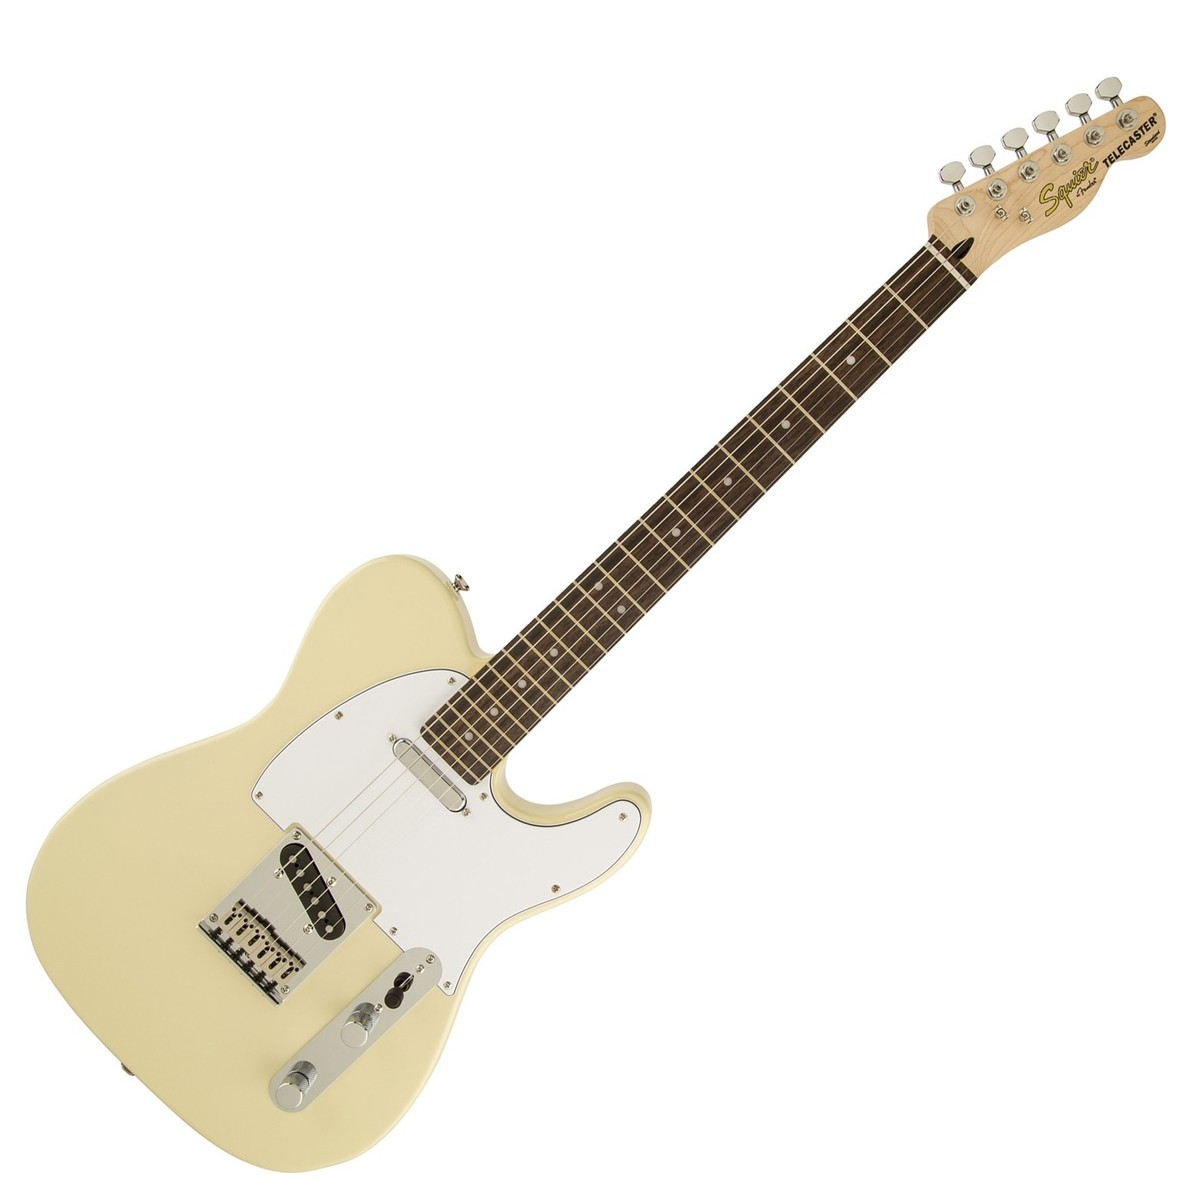 Telecaster Guitar Forum